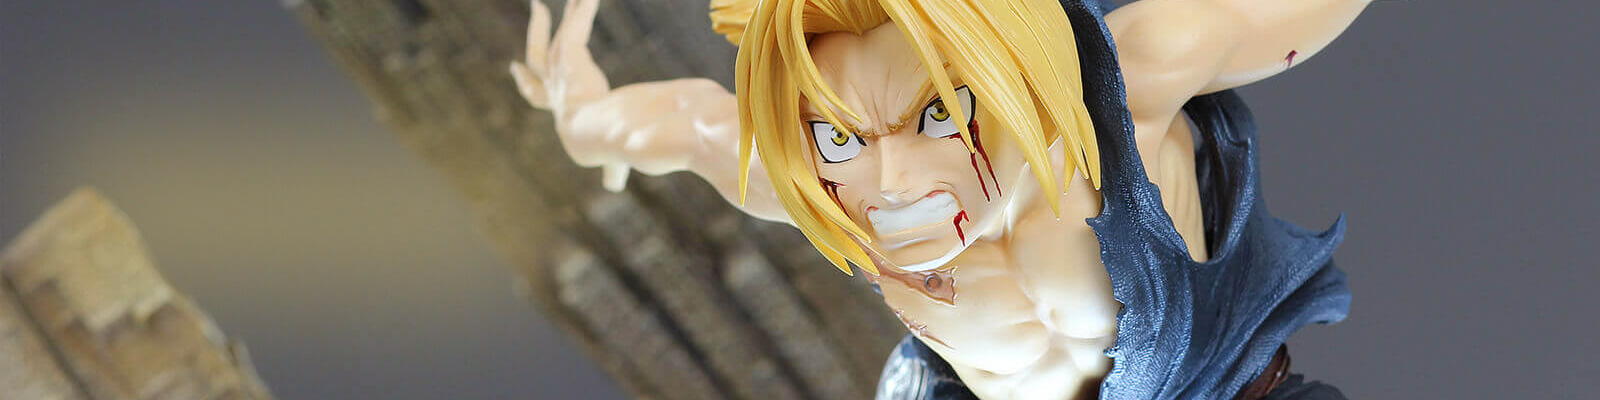 Estatua Edward Elric A fierce counter attack Fullmetal Alchemist